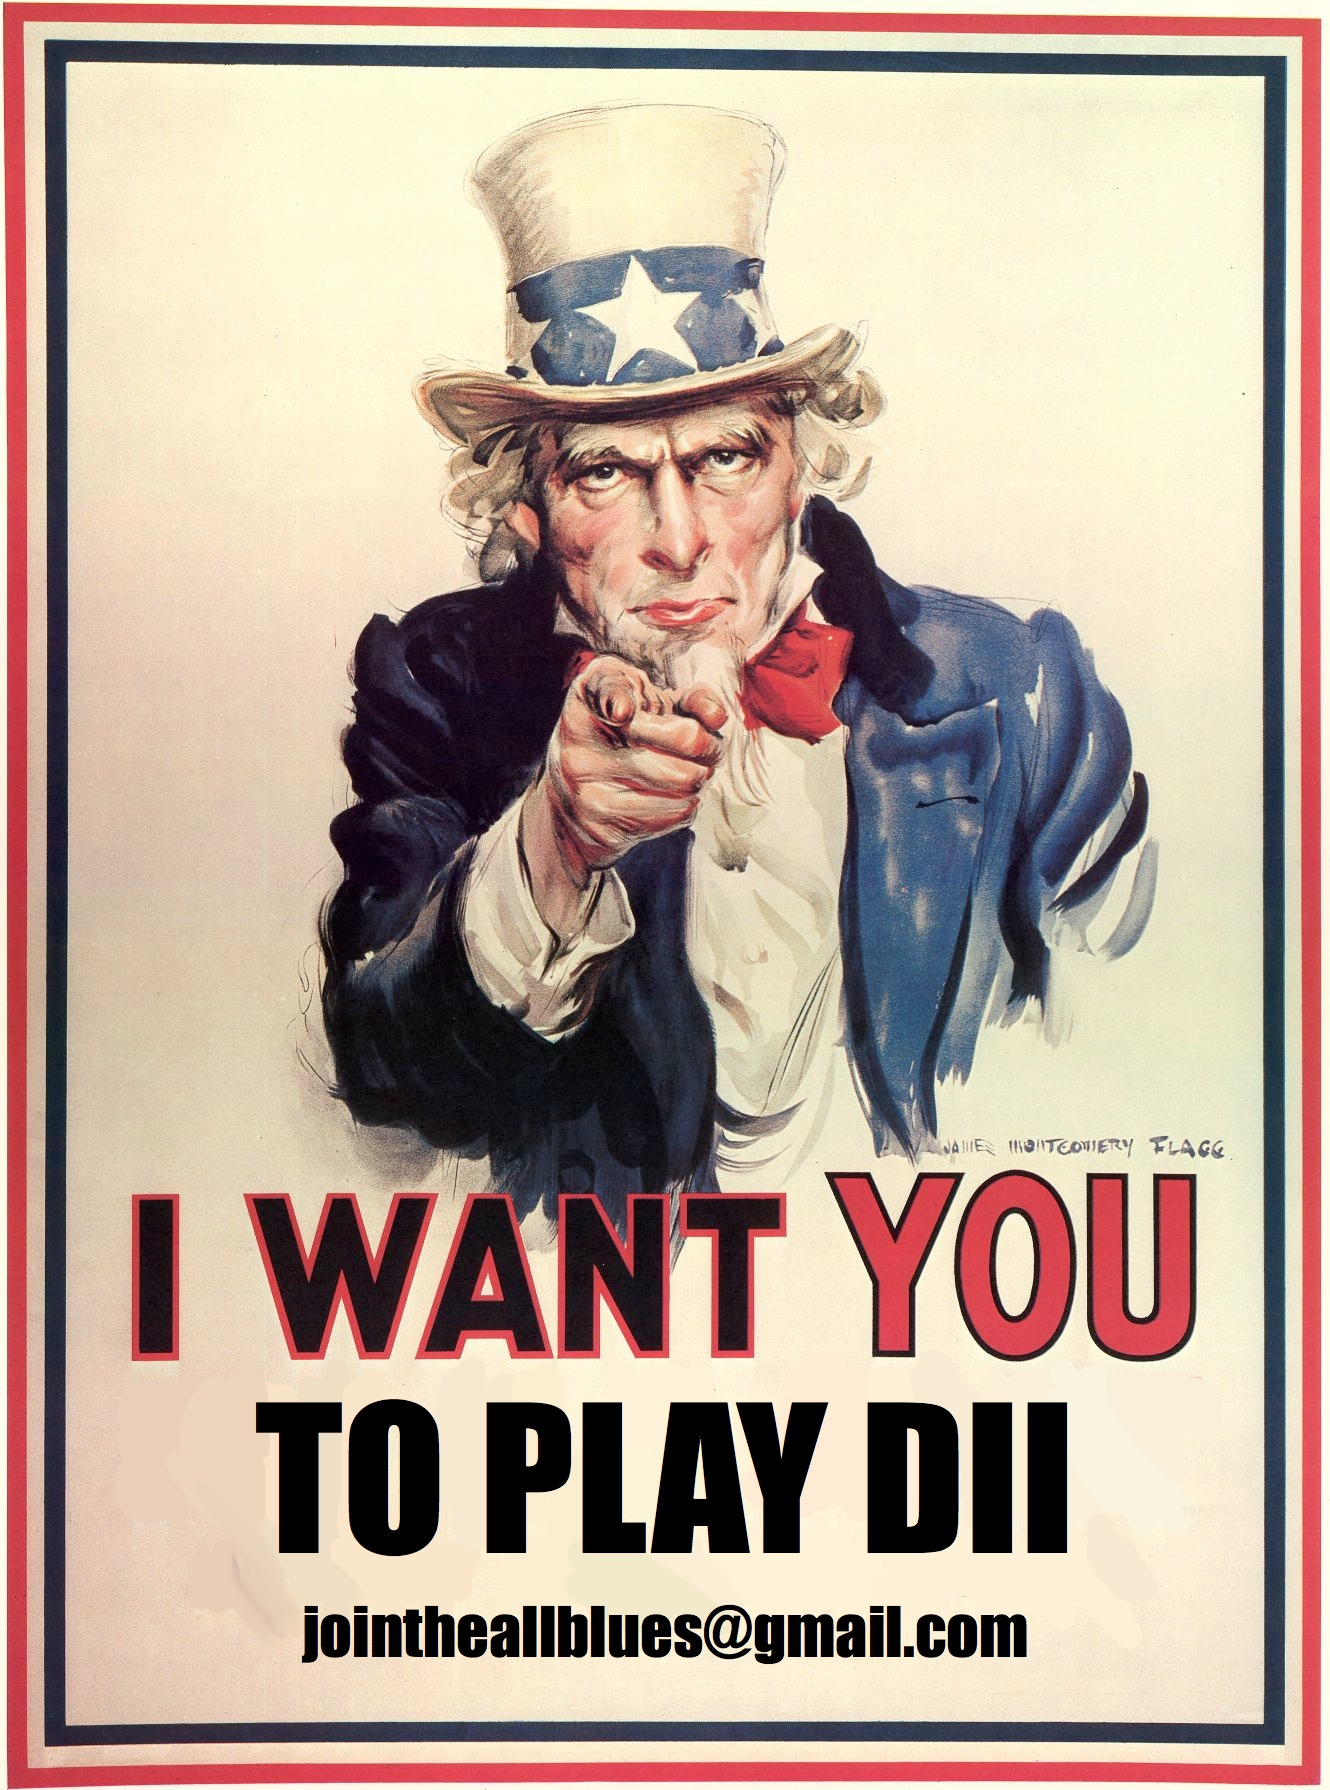 Our DII program is looking for more players. Whether you've played before or not, we want you at practice. Practices are from 7 to 9pm on Tuesdays and Thursdays at the Gilman Turf Fields. All you need is a pair of cleats, a mouthguard, and a desire to play rugby. For more information, e-mail jointheallblues@gmail.com -- or just show up!